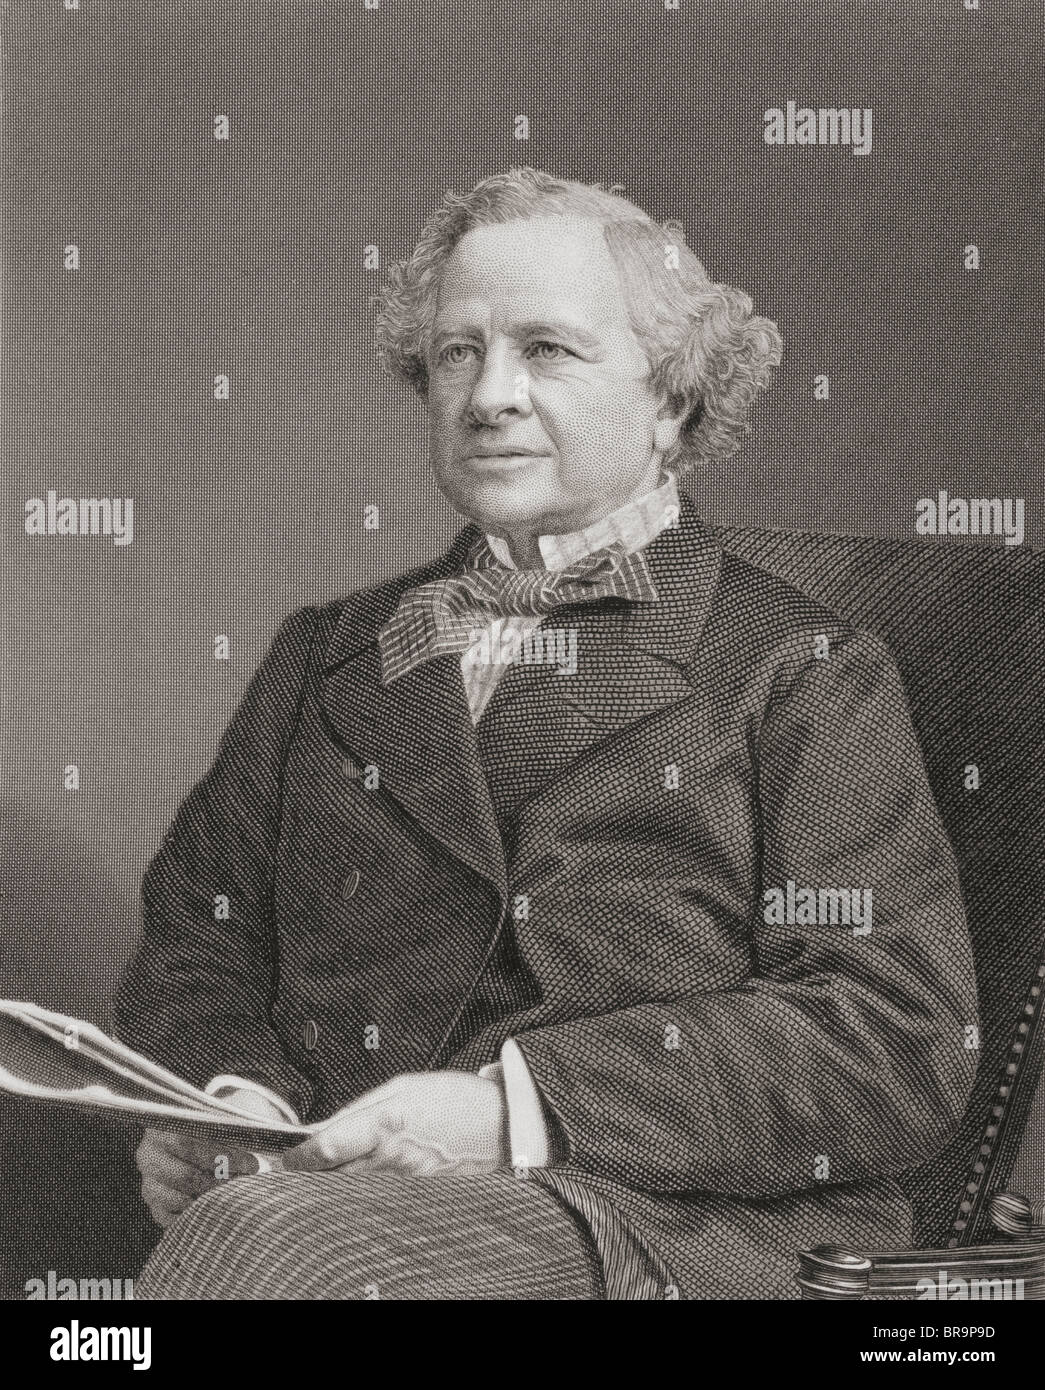 Granville George Leveson Gower, 2nd Earl Granville, 1815 to 1891. British Liberal statesman. - Stock Image